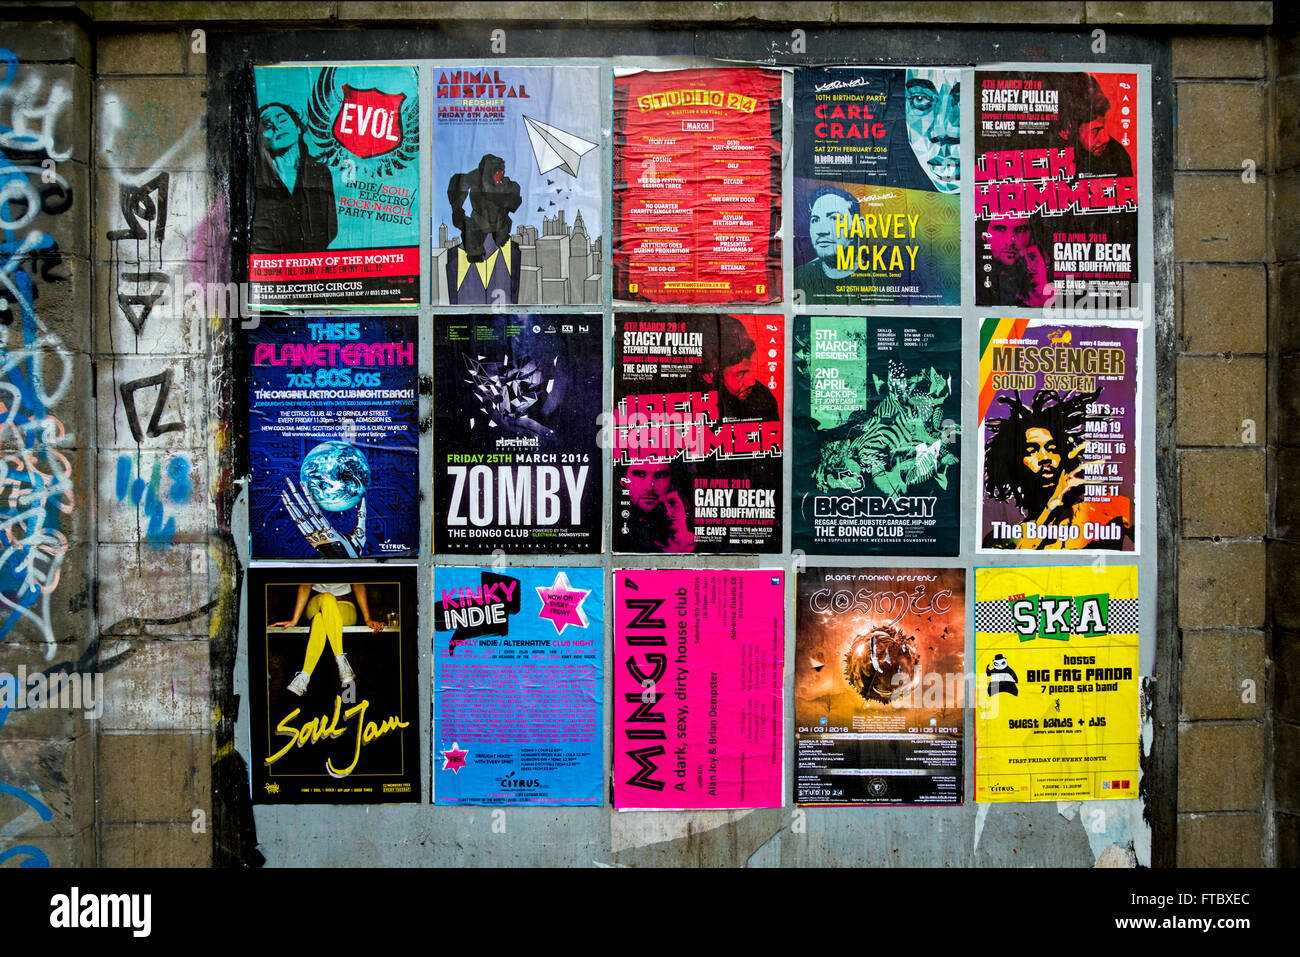 Posters advertising various nightclubs and events in Edinburgh. - Stock Image